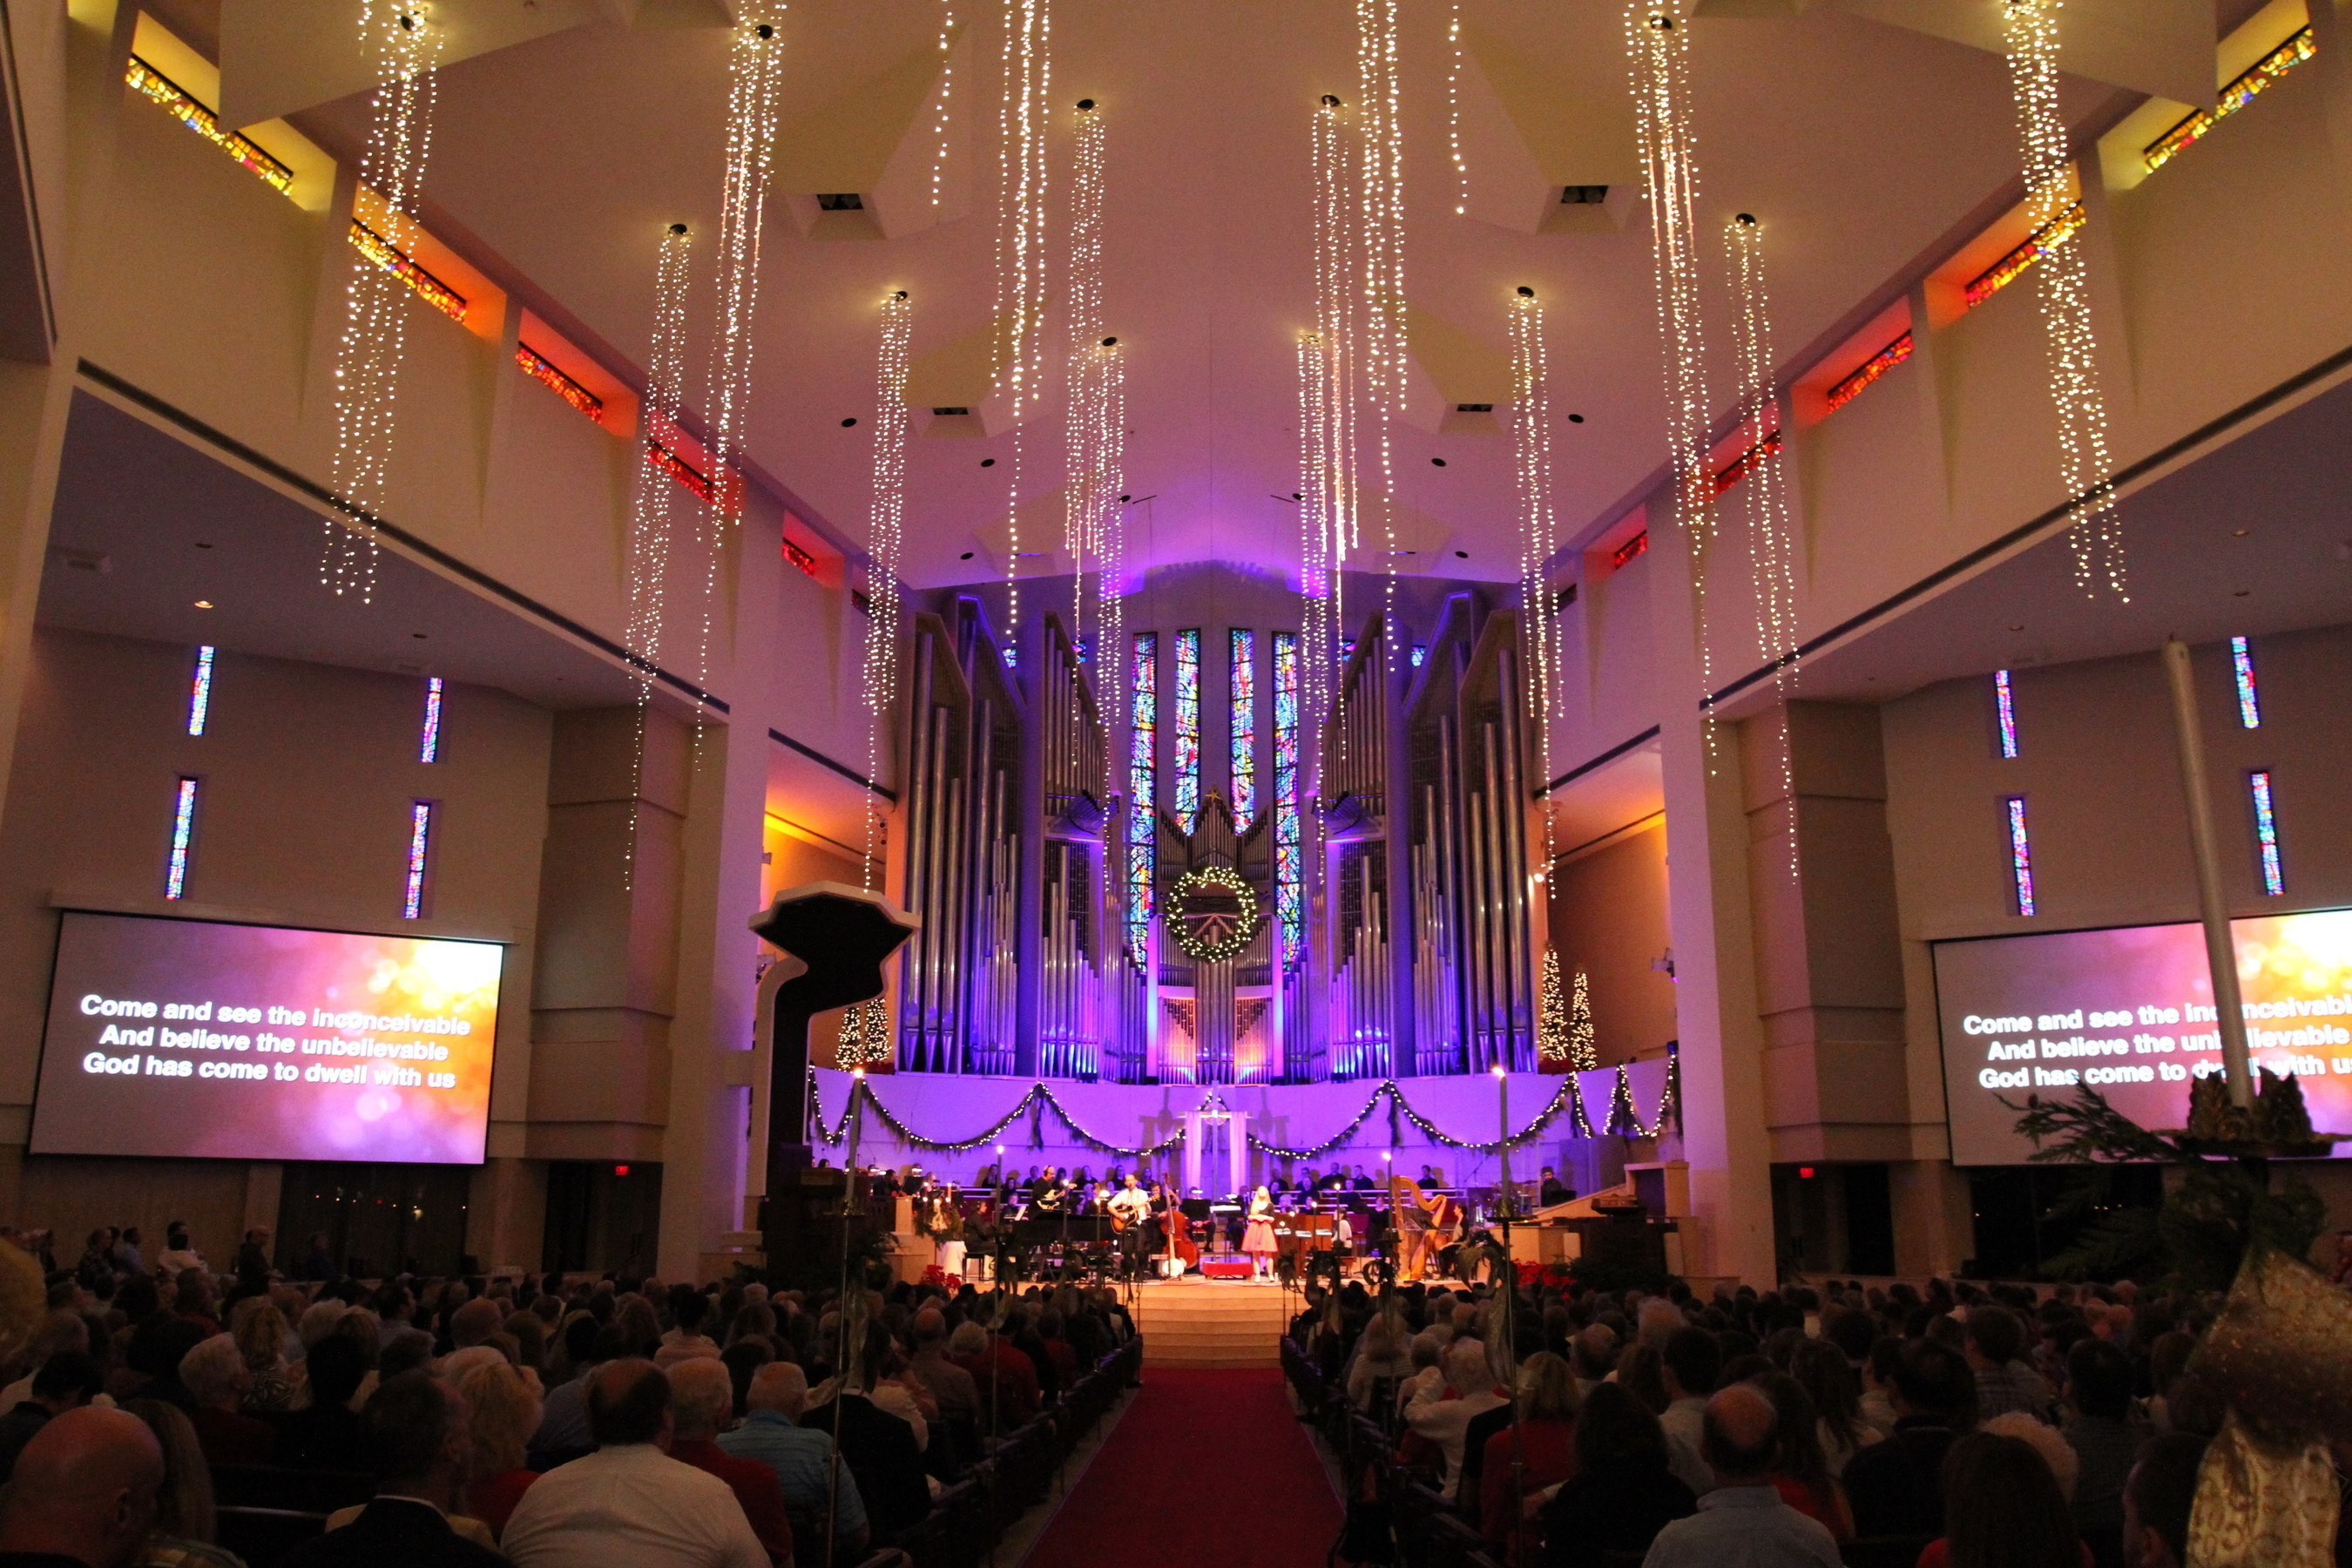 Celebrate the Christmas Season at Coral Ridge Presbyterian Church with a Special Concert Featuring